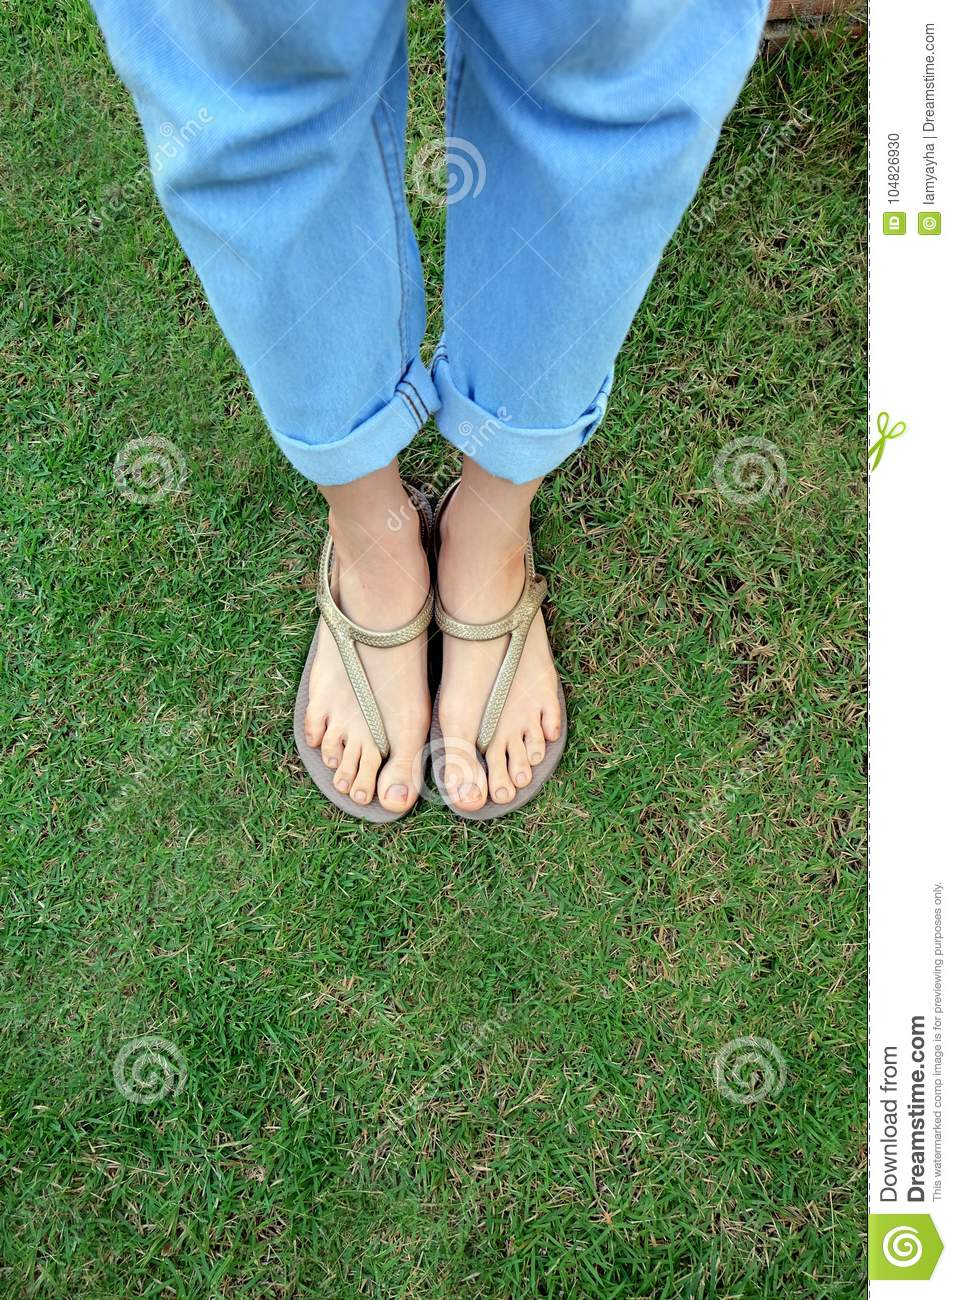 Close Up Woman's Legs and Feet Wearing Flip Flops on the Green Grass Background